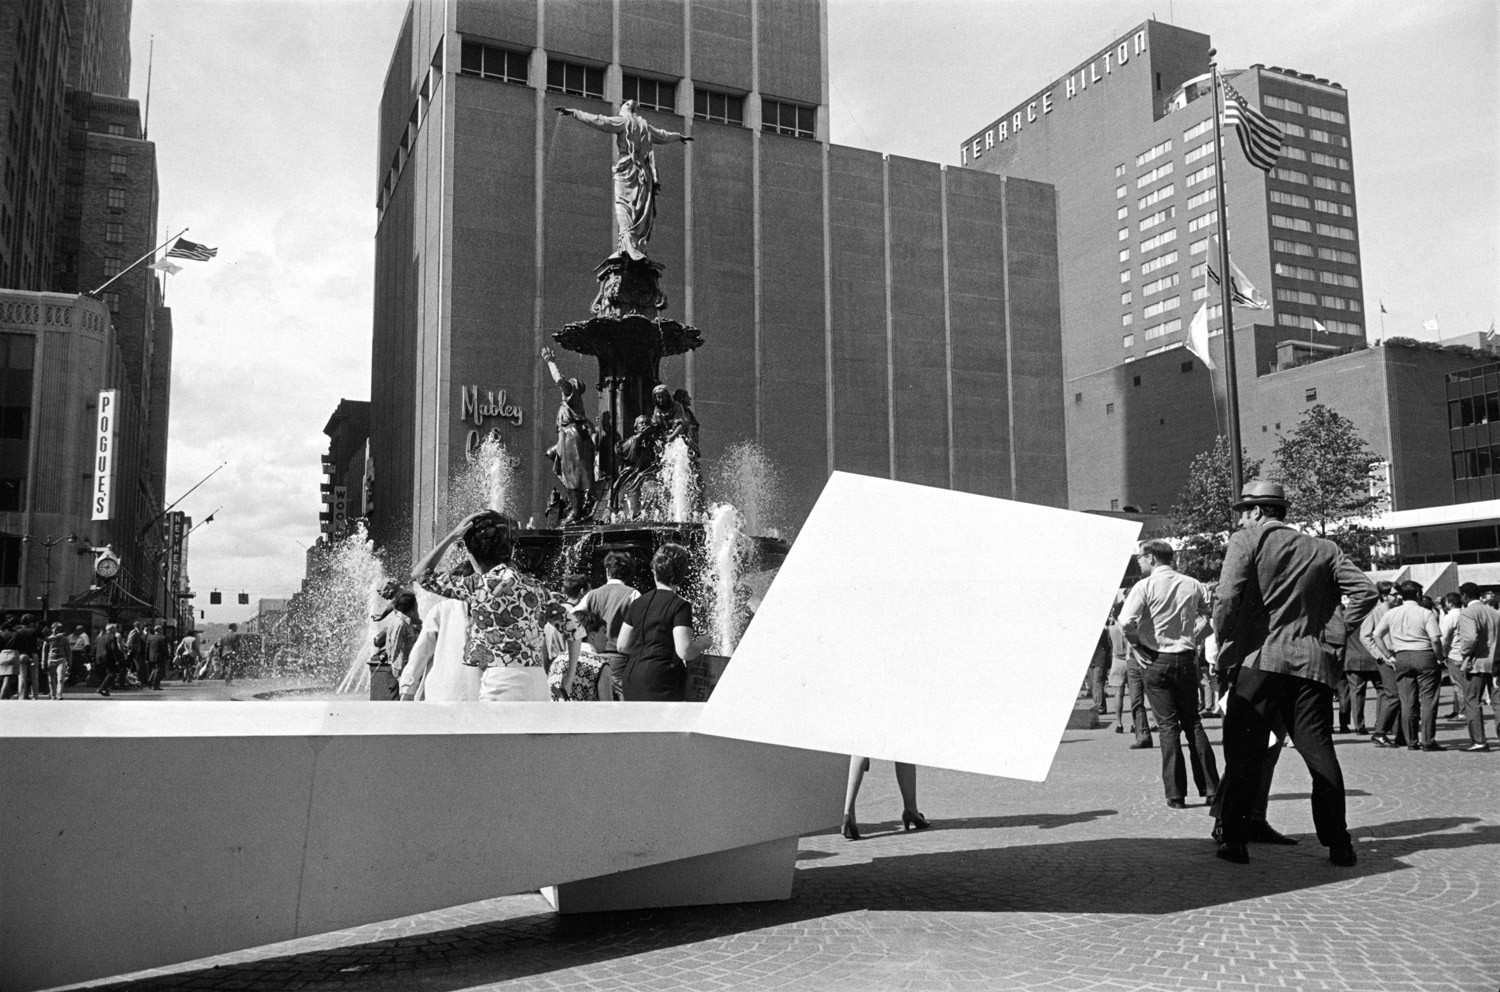 Tod Papageorge, Fountain Square, Cincinnati, Ohio, October 11, 1970